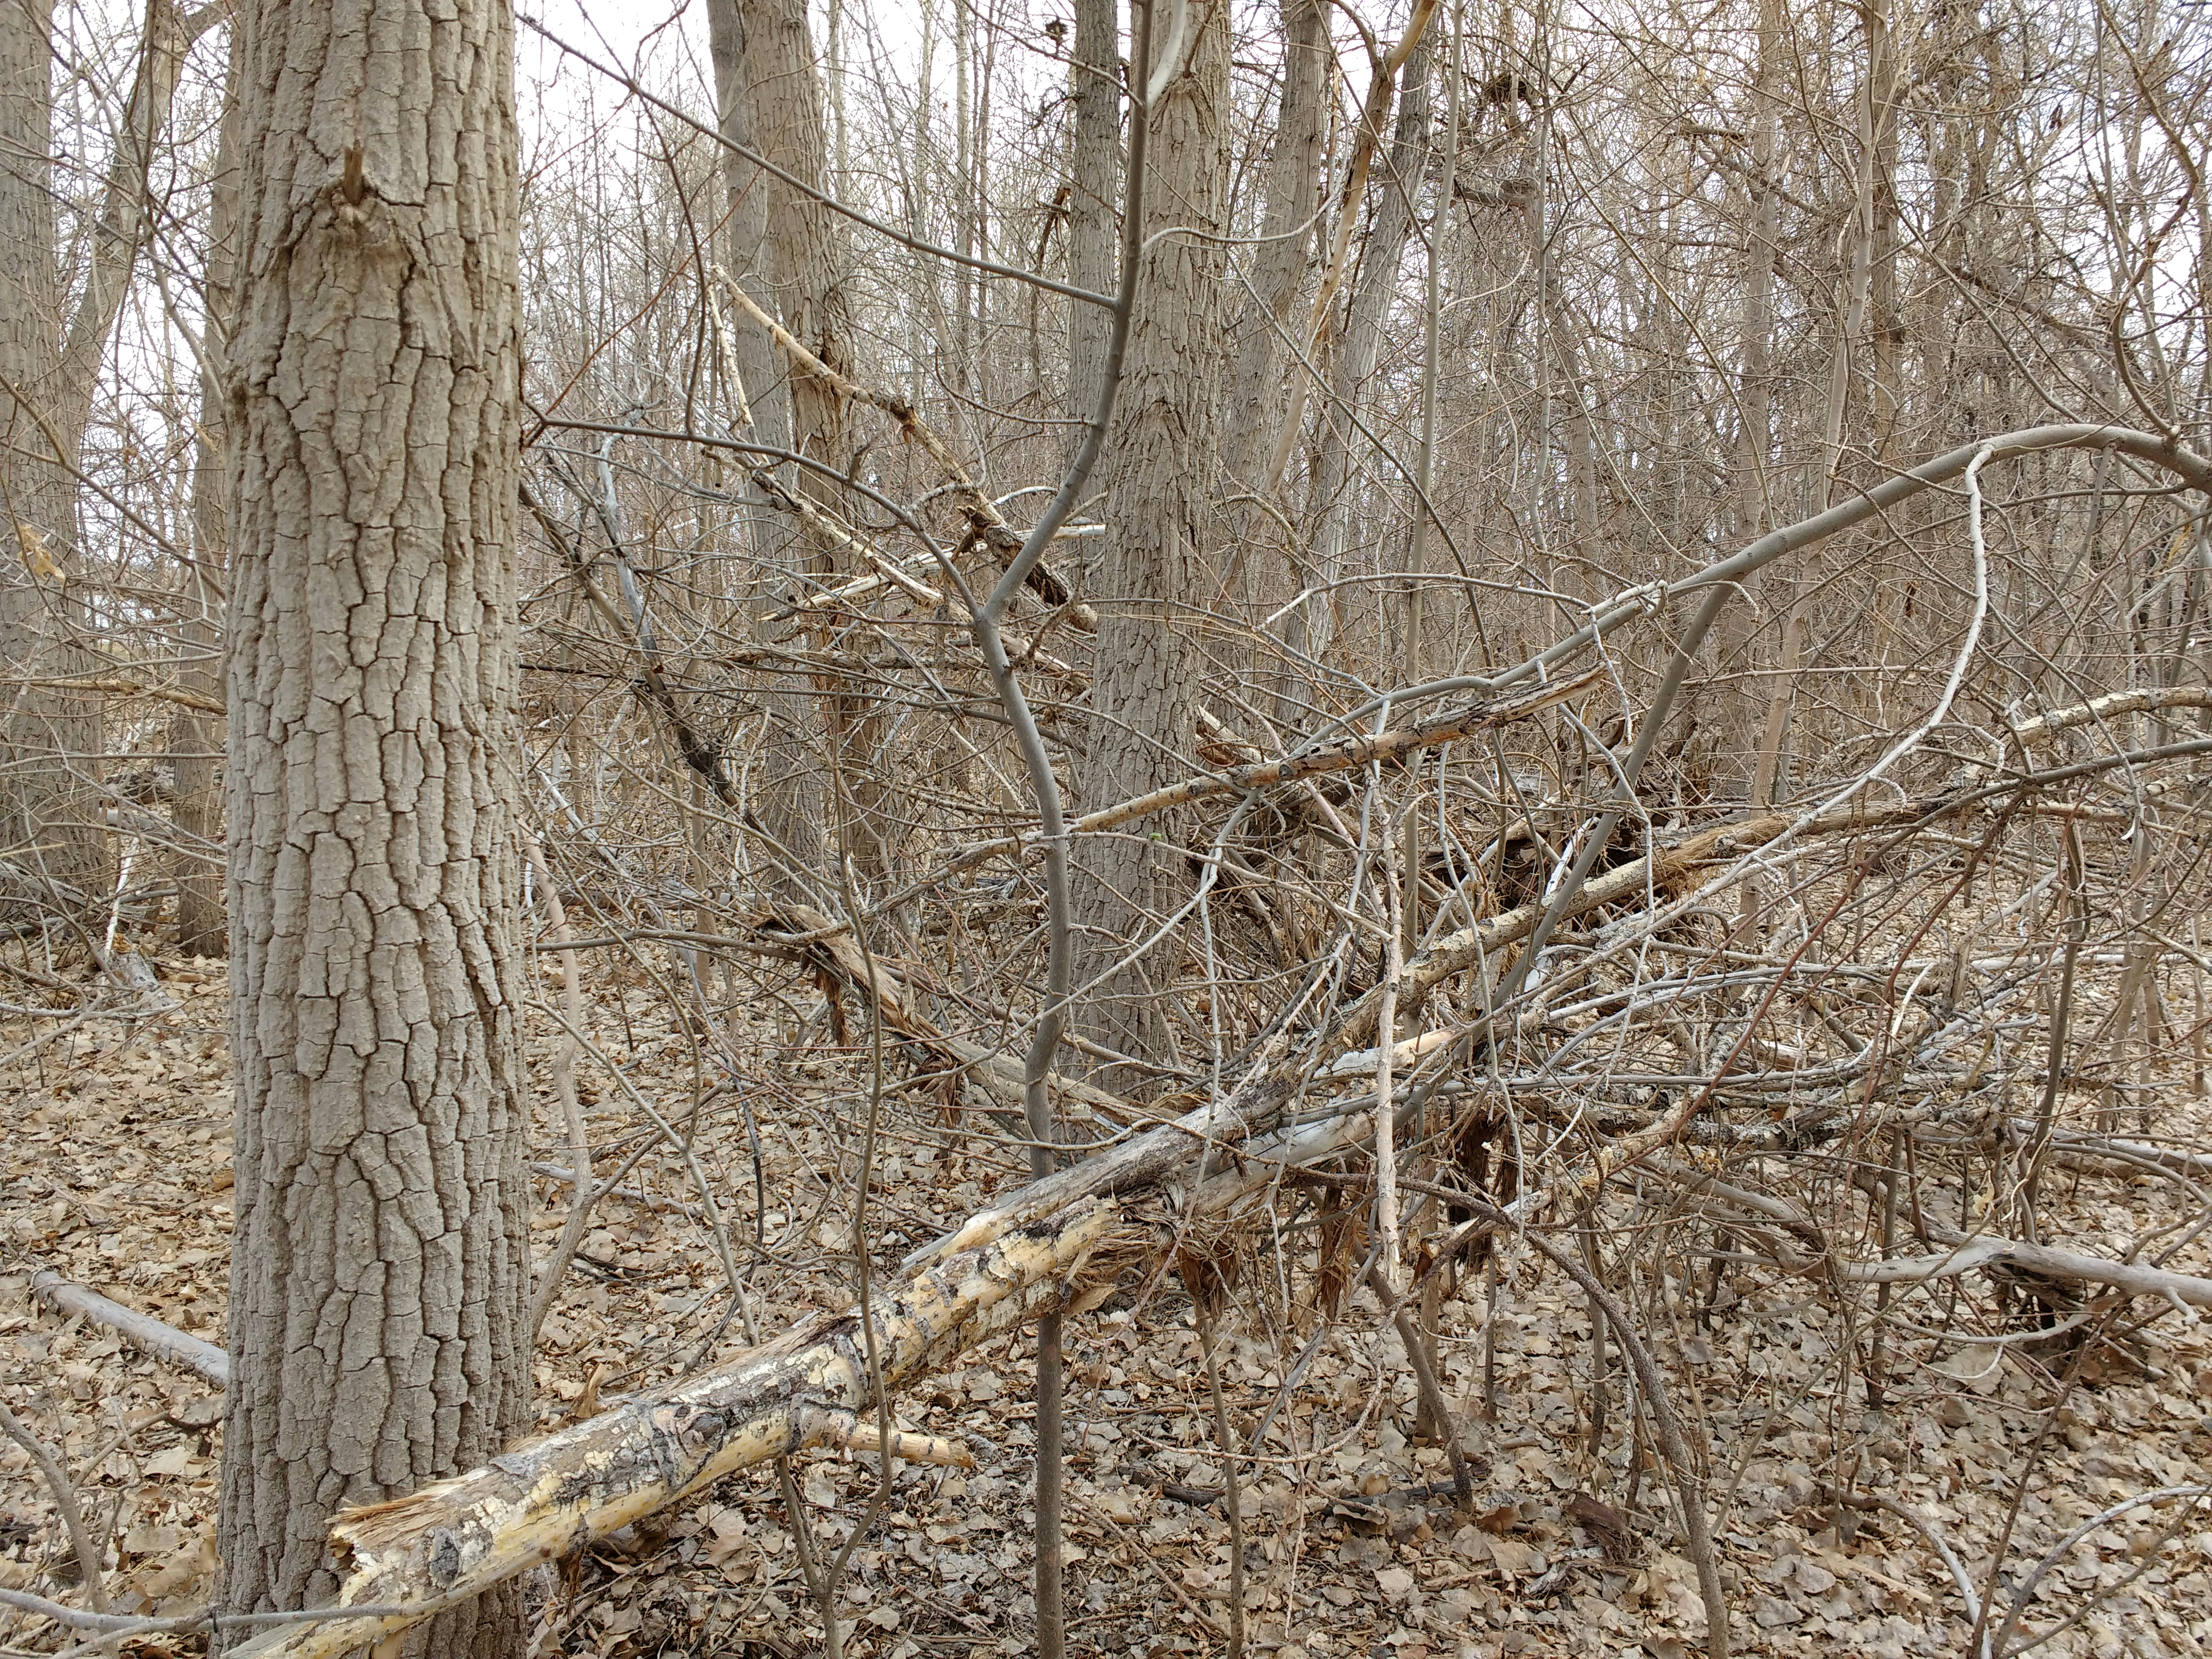 Fallen Tree Branches in Winter Woods Picture | Free ...